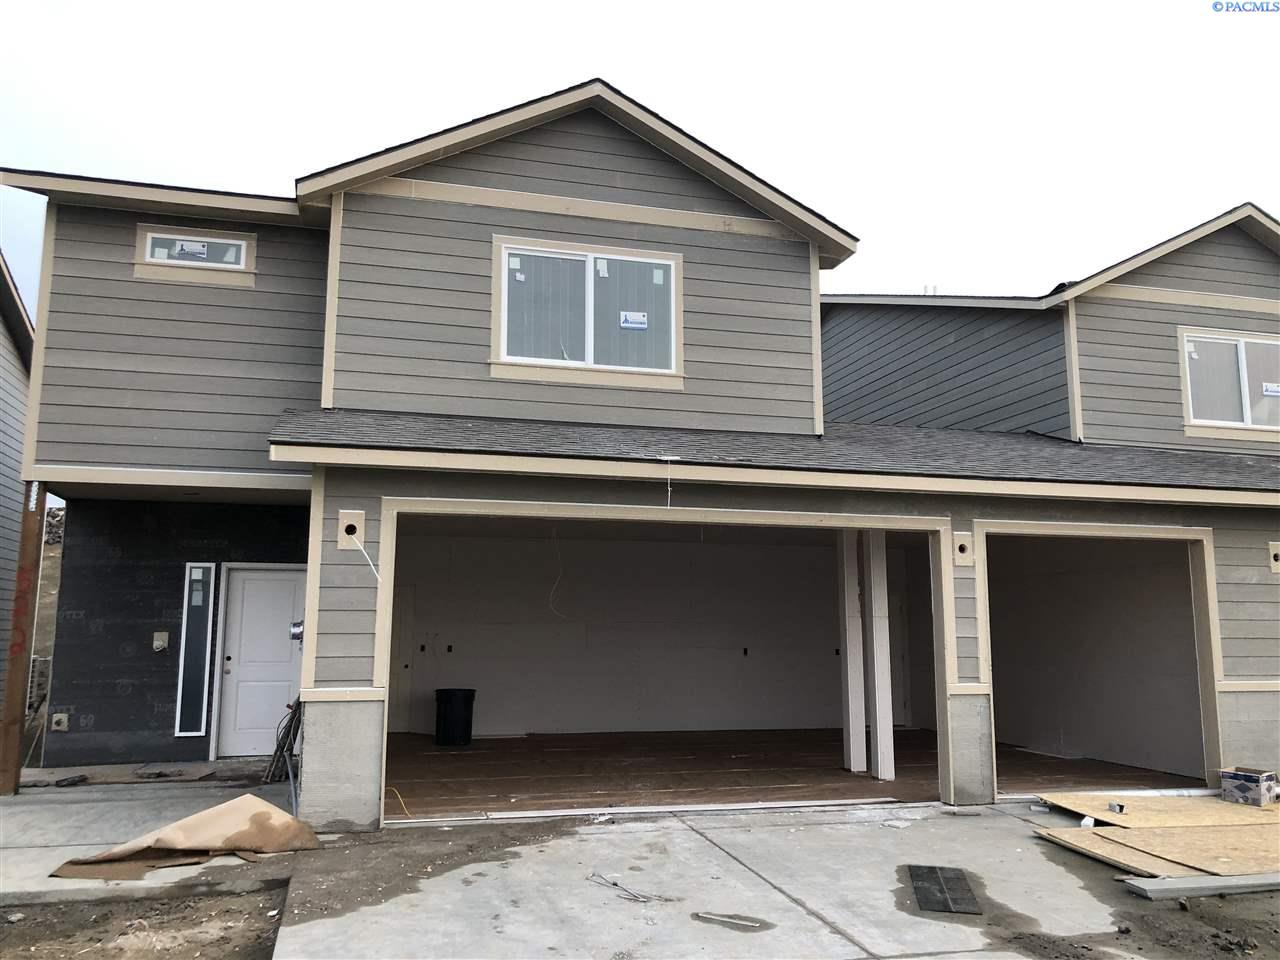 Single Family Homes for Sale at 522 Bedrock Loop West Richland, Washington 99353 United States